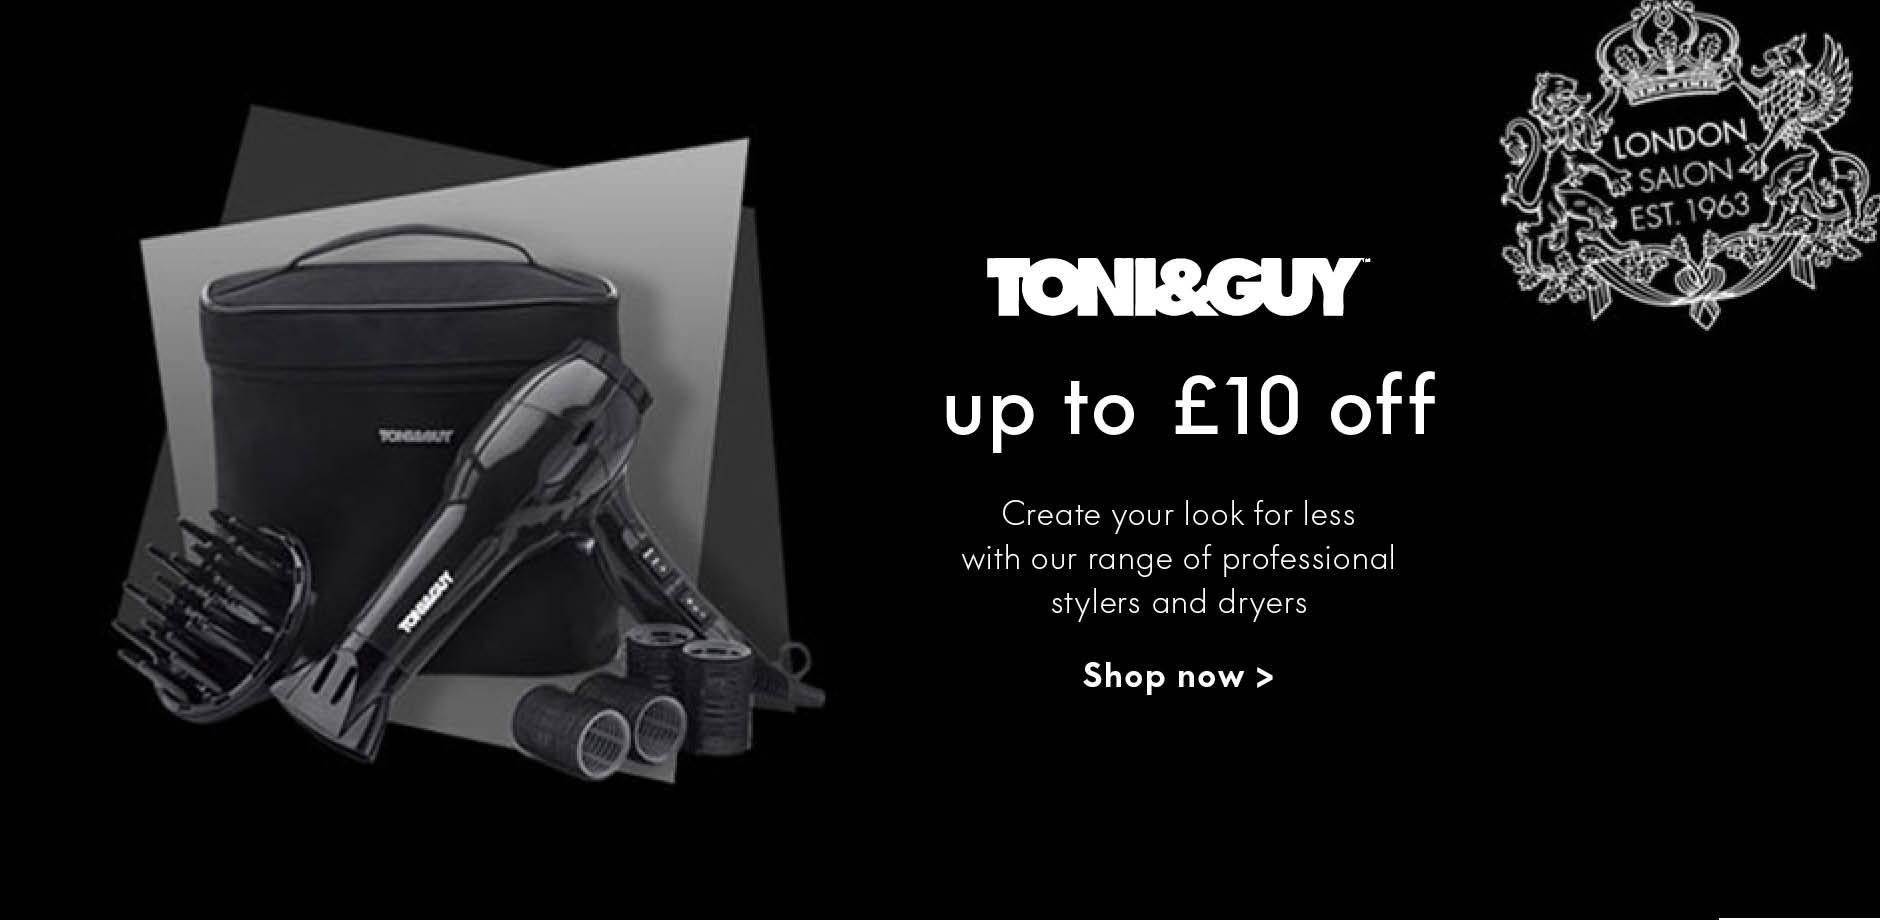 T&G £10 electricals